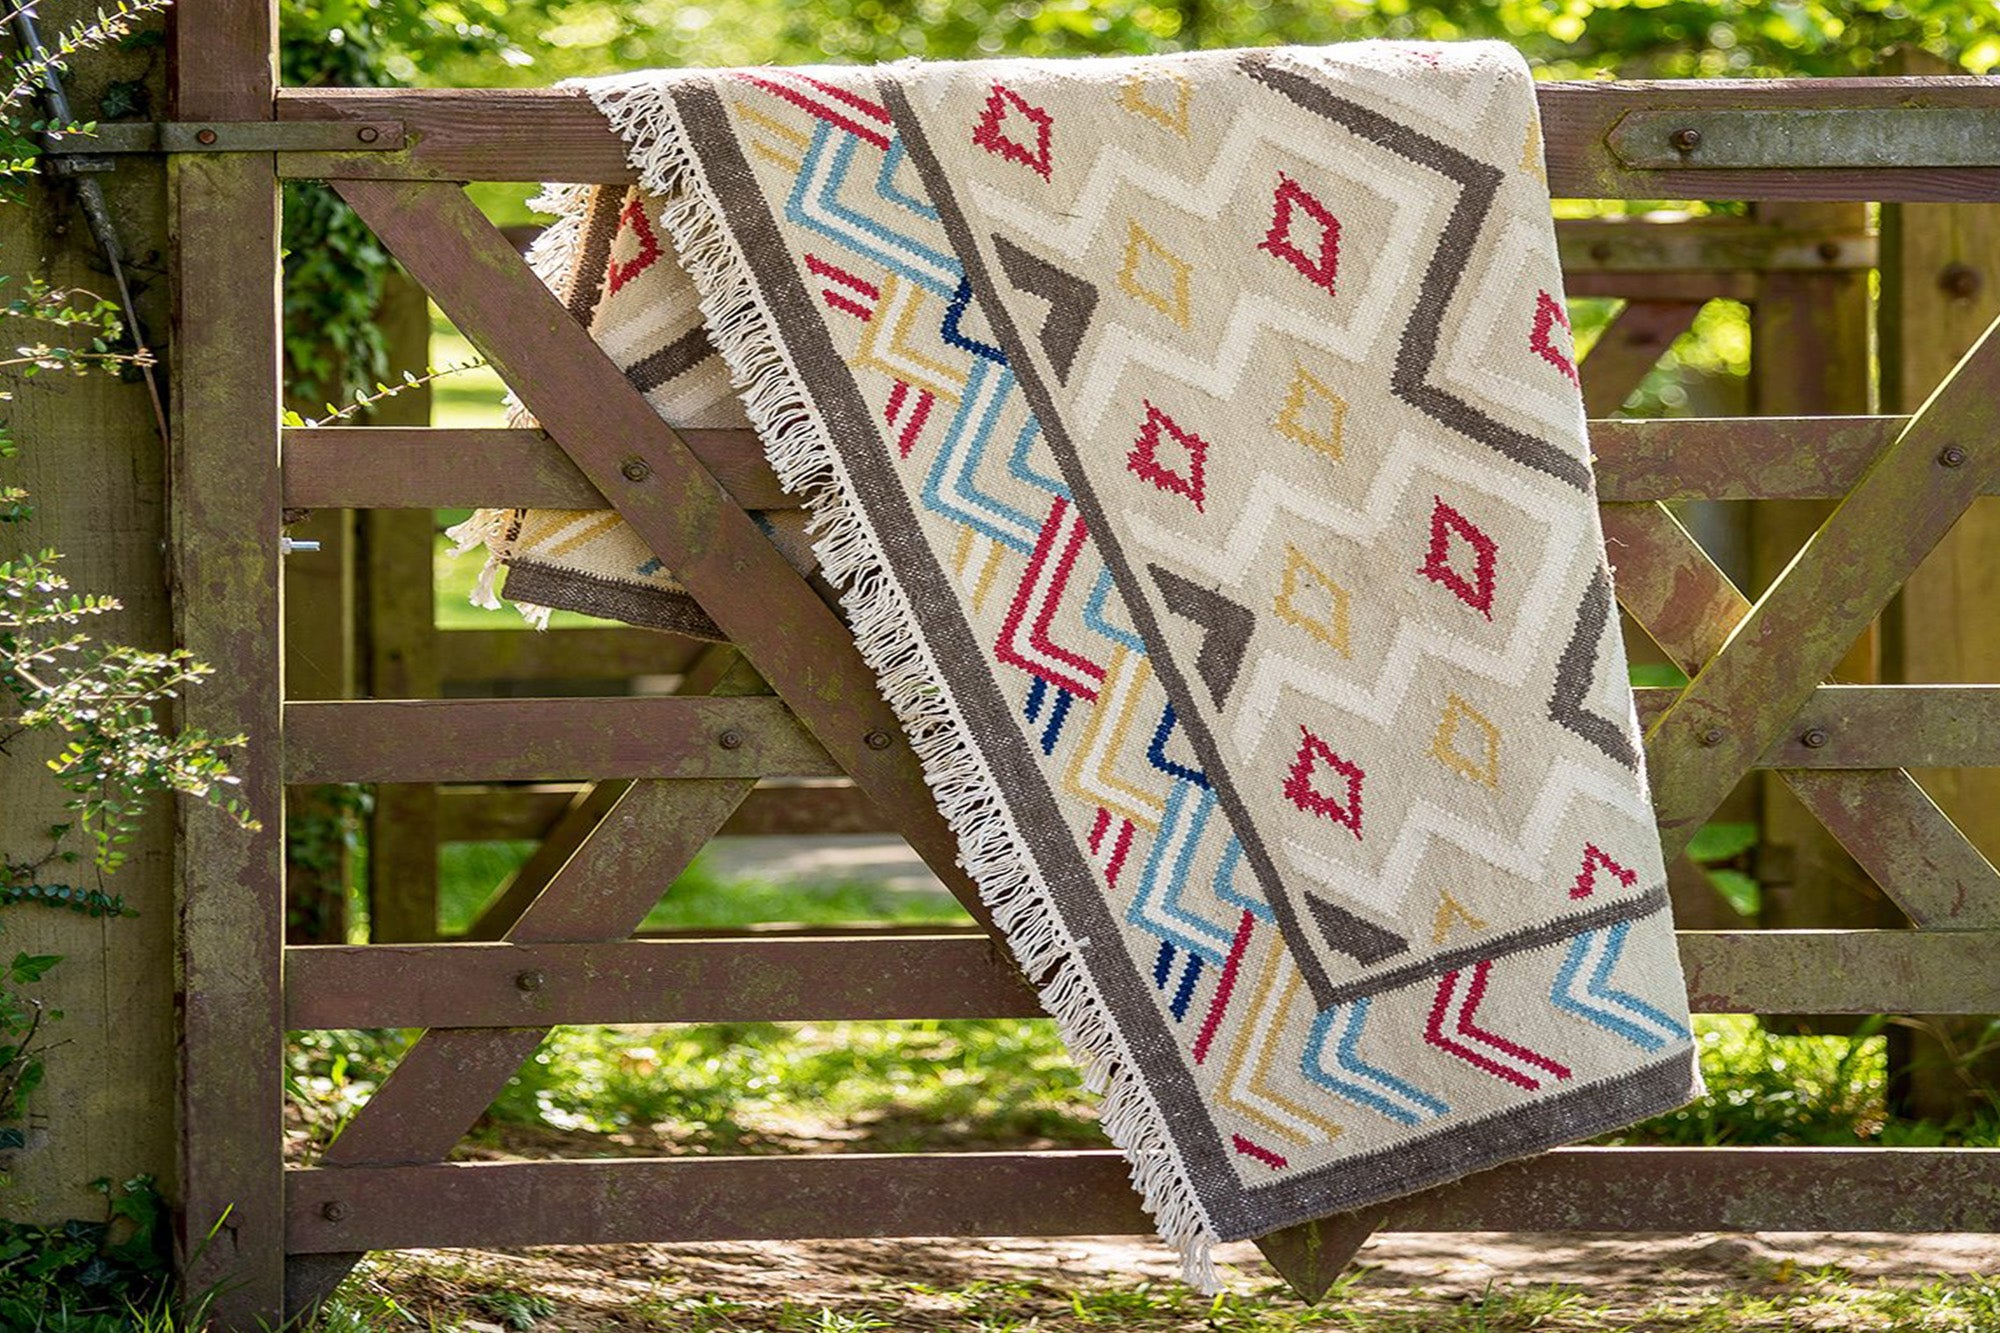 Wicklewood Osborne rug is a handwoven flatweave rug that mixes diamond motifs in the ground with a strong colourful zig zag.